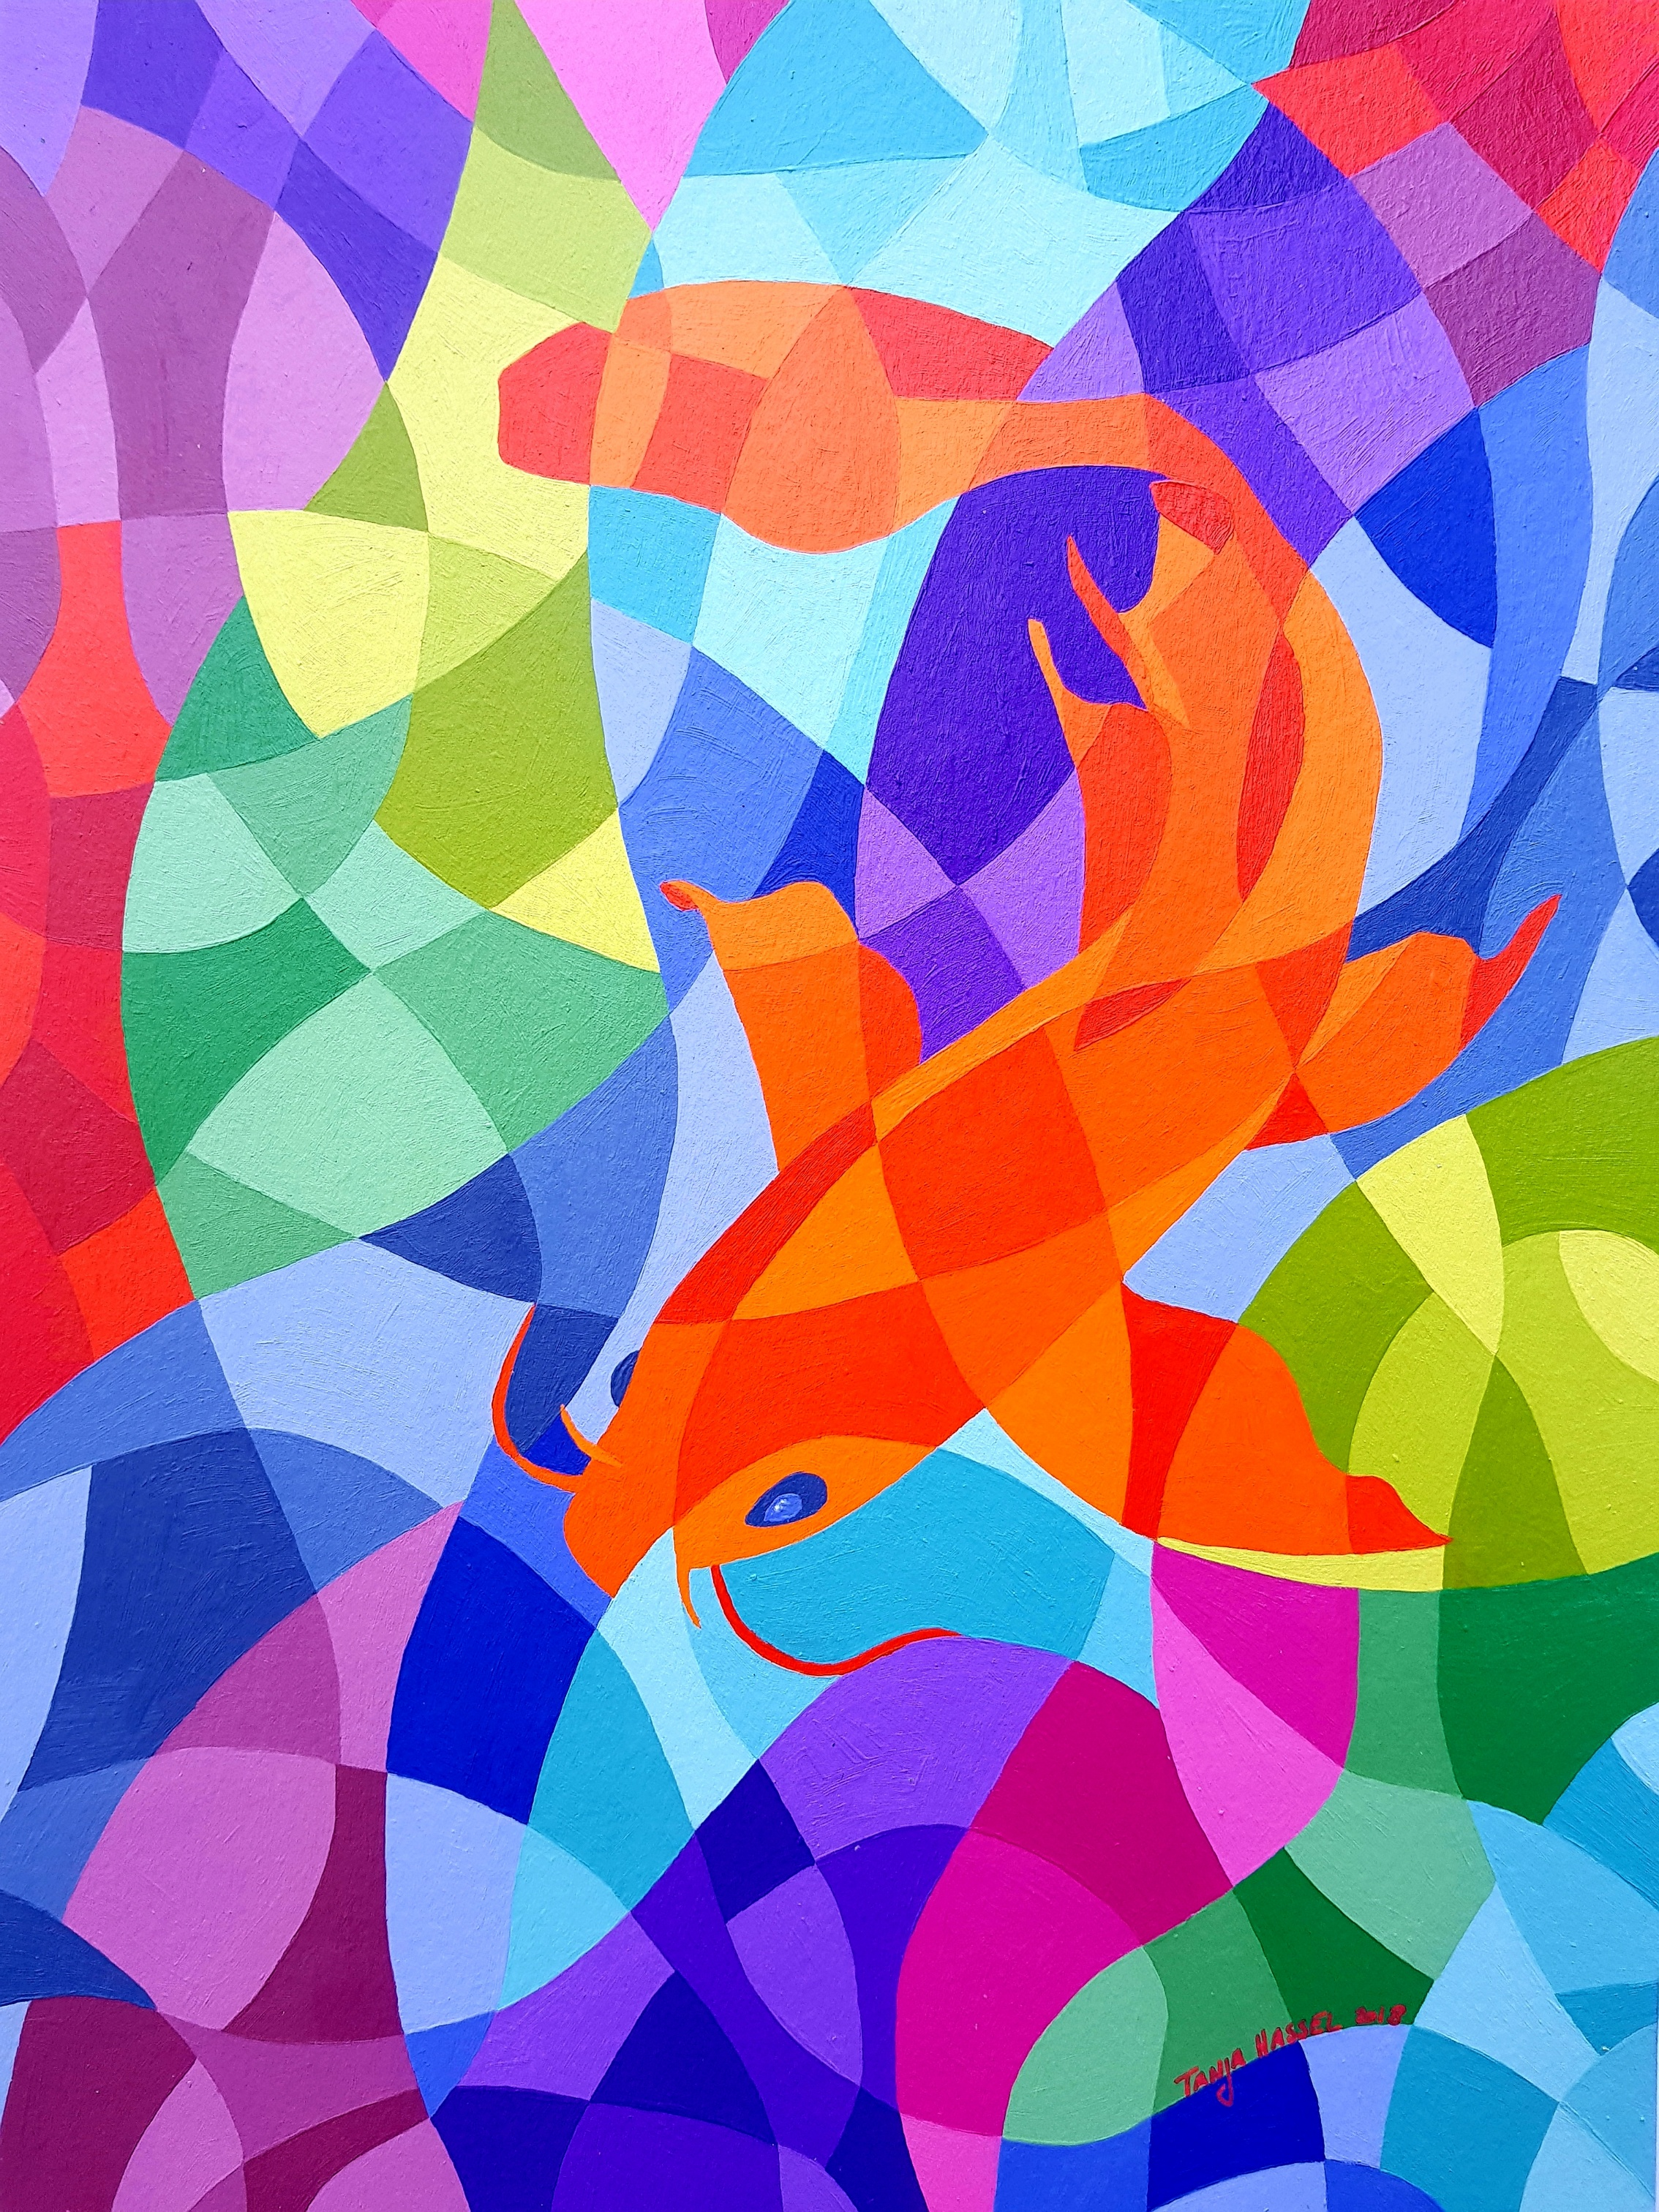 """"""" I painted this piece to capture the fluid, graceful movements of this fish, which I believed to be a catfish but it may actually be a carp. Still, I love the shape of this fish and the golden orange colour, too. That is why I kept the background mainly blue and purple to emphasize the vibrant colour of the fish. """" - September's Featured Artist, Tanja Hassel  Catfish, acrylics on paper, 21 cm x 28.5 cm, 2018"""